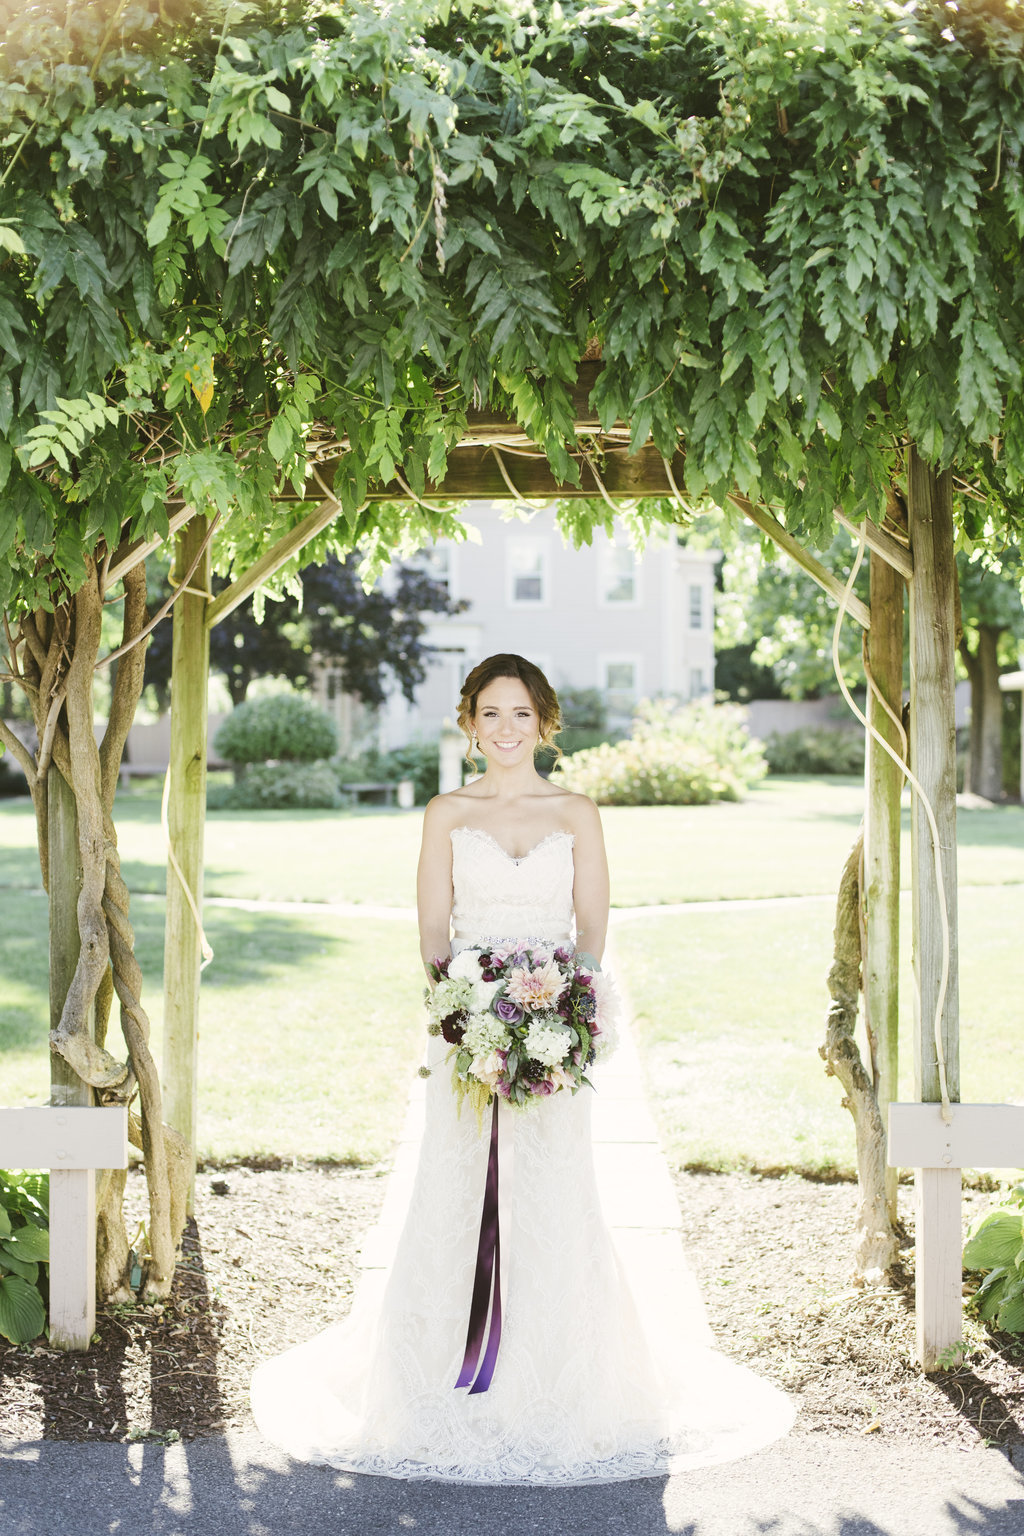 Monica-Relyea-Events-Alicia-King-Photography-Delamater-Inn-Beekman-Arms-Wedding-Rhinebeck-New-York-Hudson-Valley129